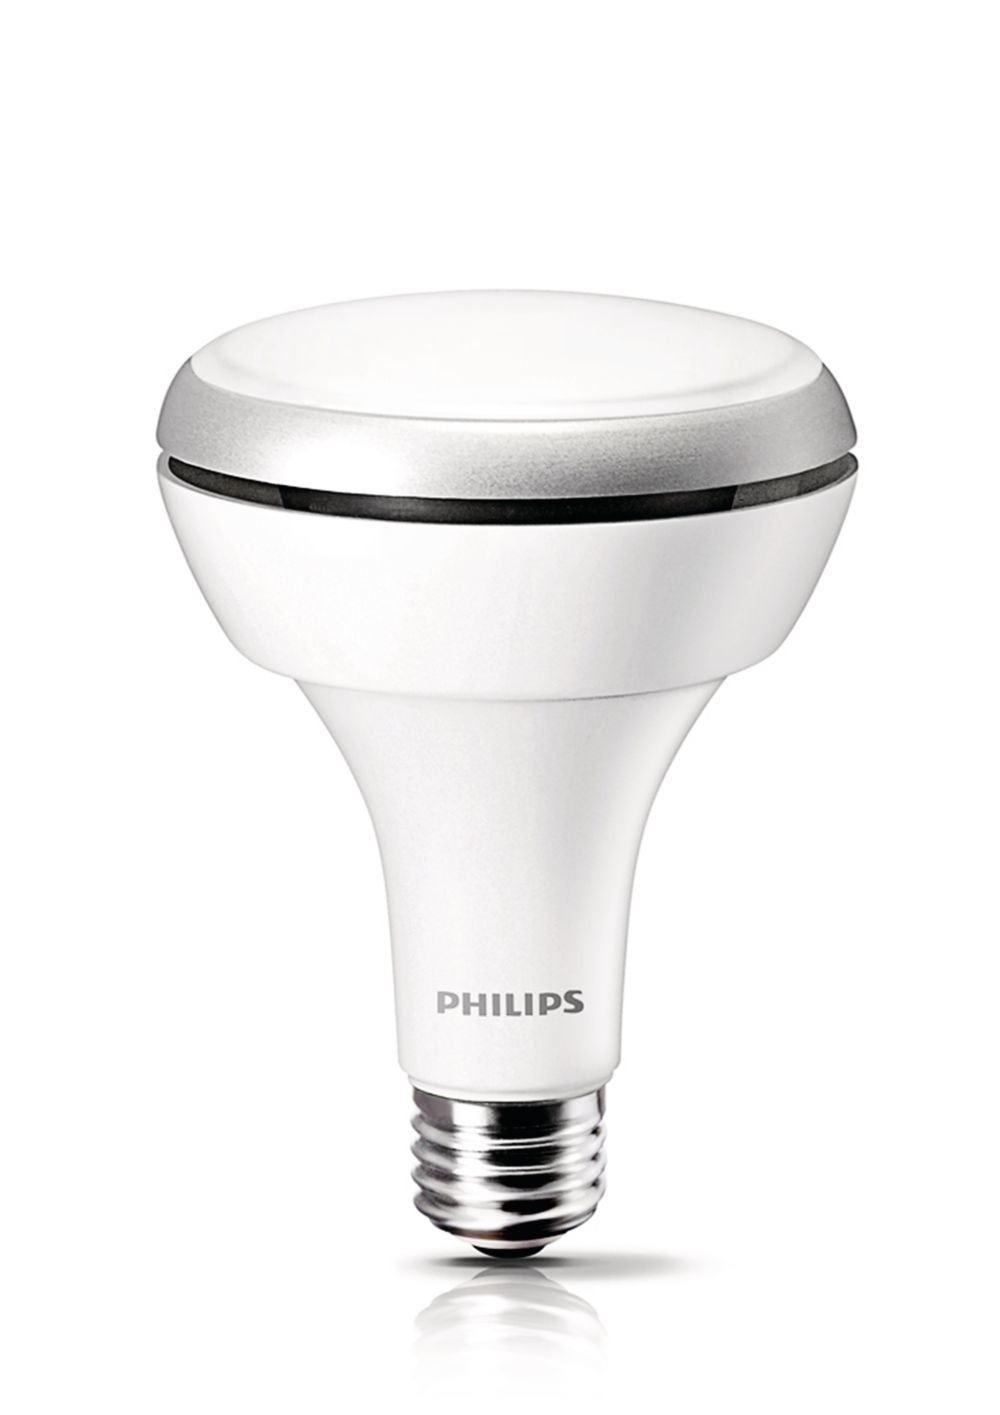 Philips 425306 85 watt 65 watt br30 indoor daylight 5000k led philips 425306 85 watt 65 watt br30 indoor daylight 5000k led flood light bulb dimmable led household light bulbs amazon arubaitofo Image collections